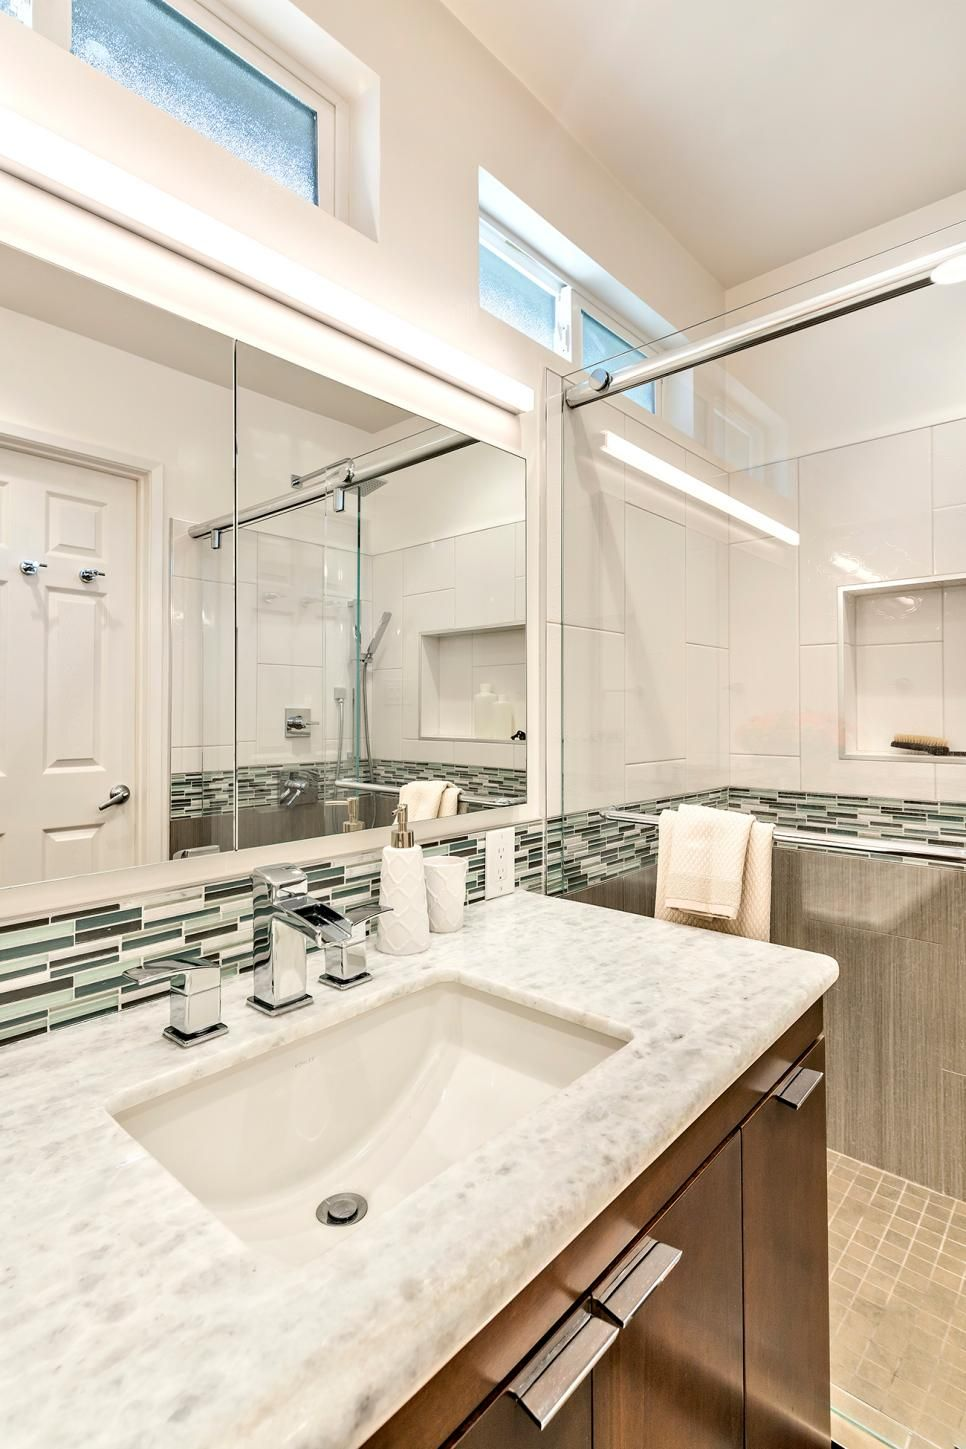 Neutral floor tile and vertical gray half wall tile in the shower neutral floor tile and vertical gray half wall tile in the shower join the thin blue and green backsplash tile border and the gray and white counte dailygadgetfo Images